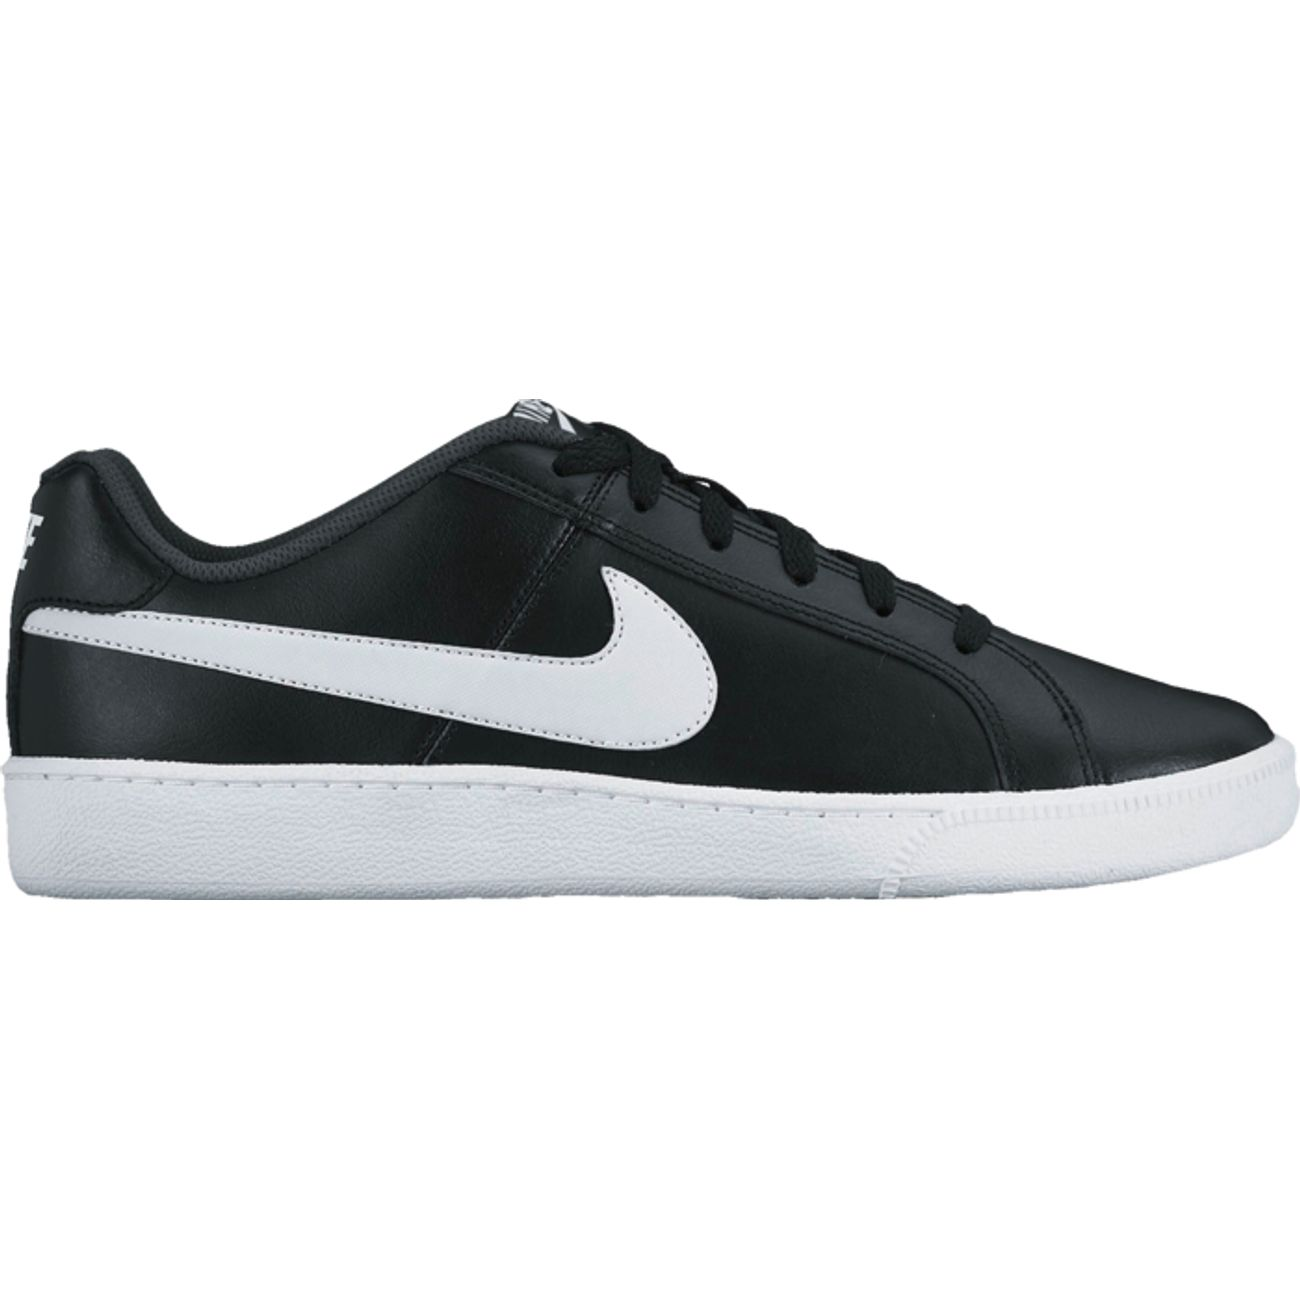 CHAUSSURES BASSES  homme NIKE COURT ROYALE LOW